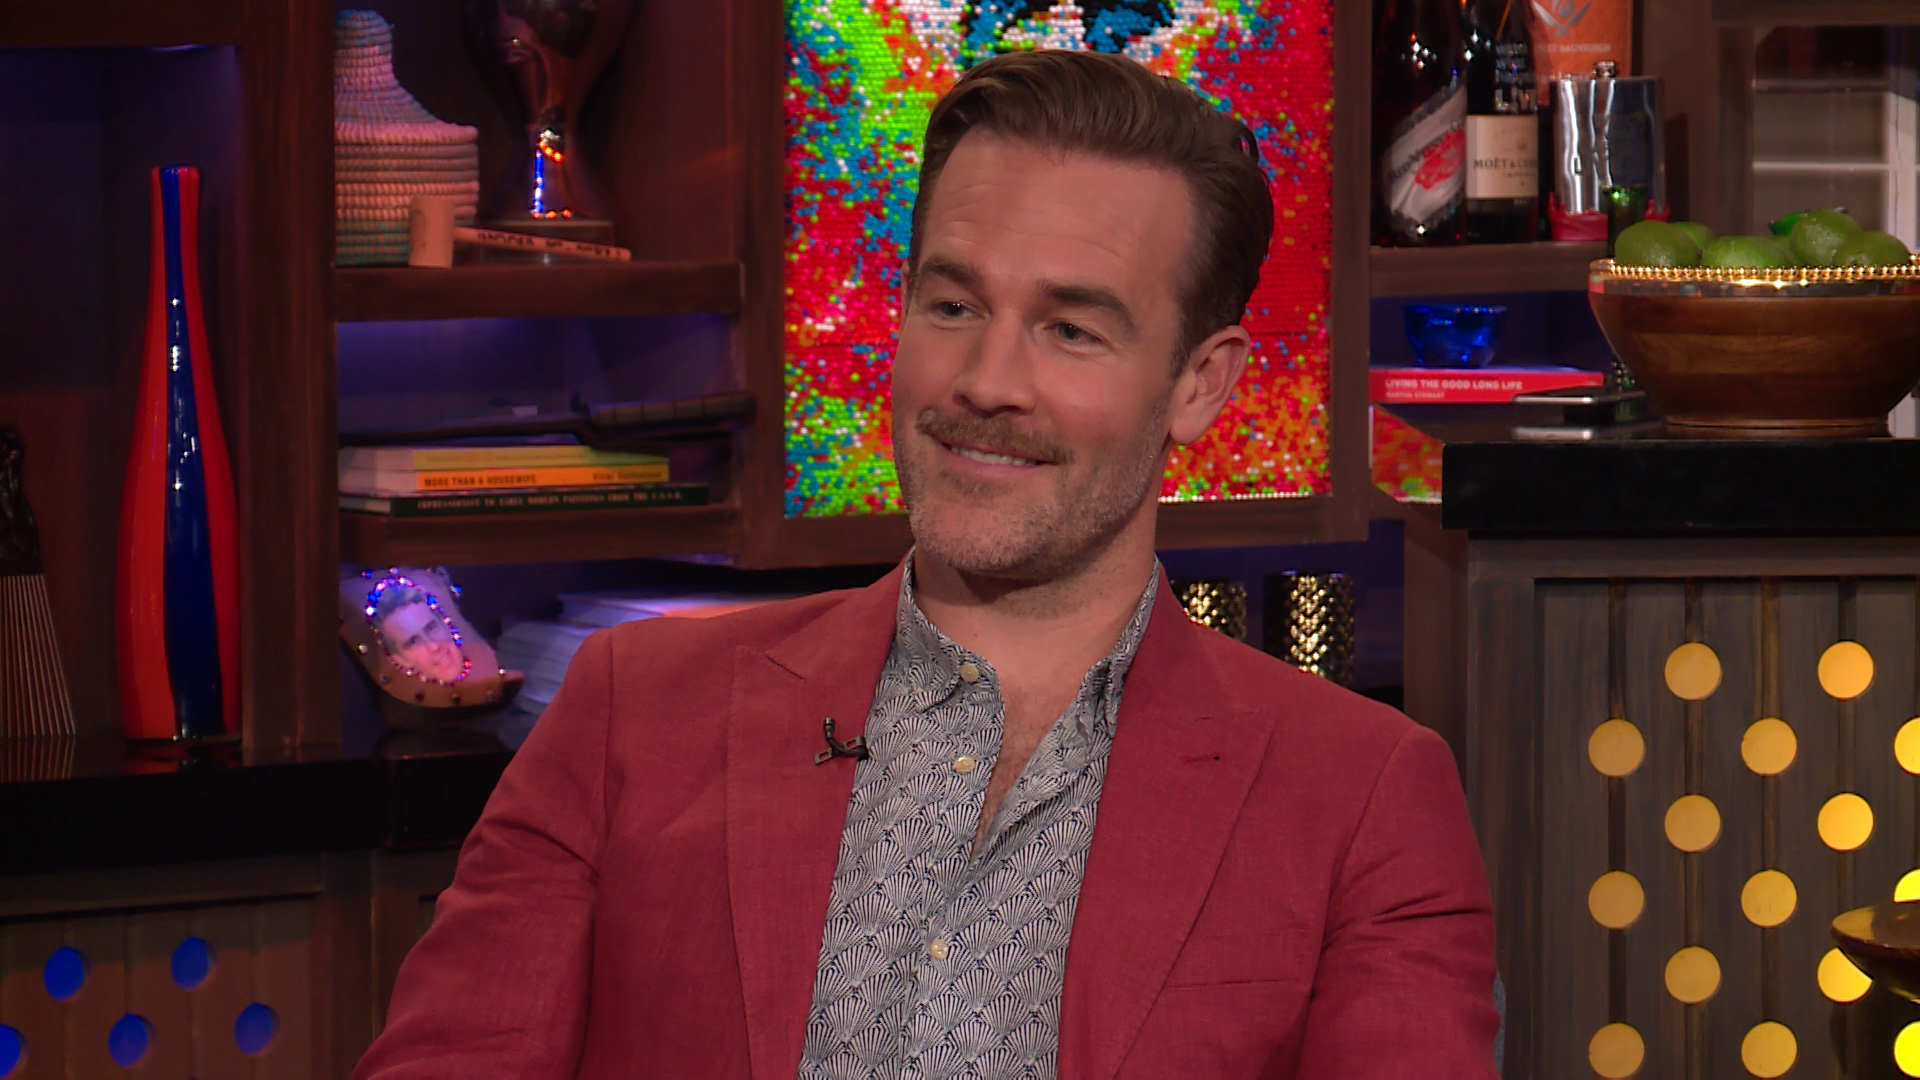 Are James Van Der Beek & Diplo Buddies?